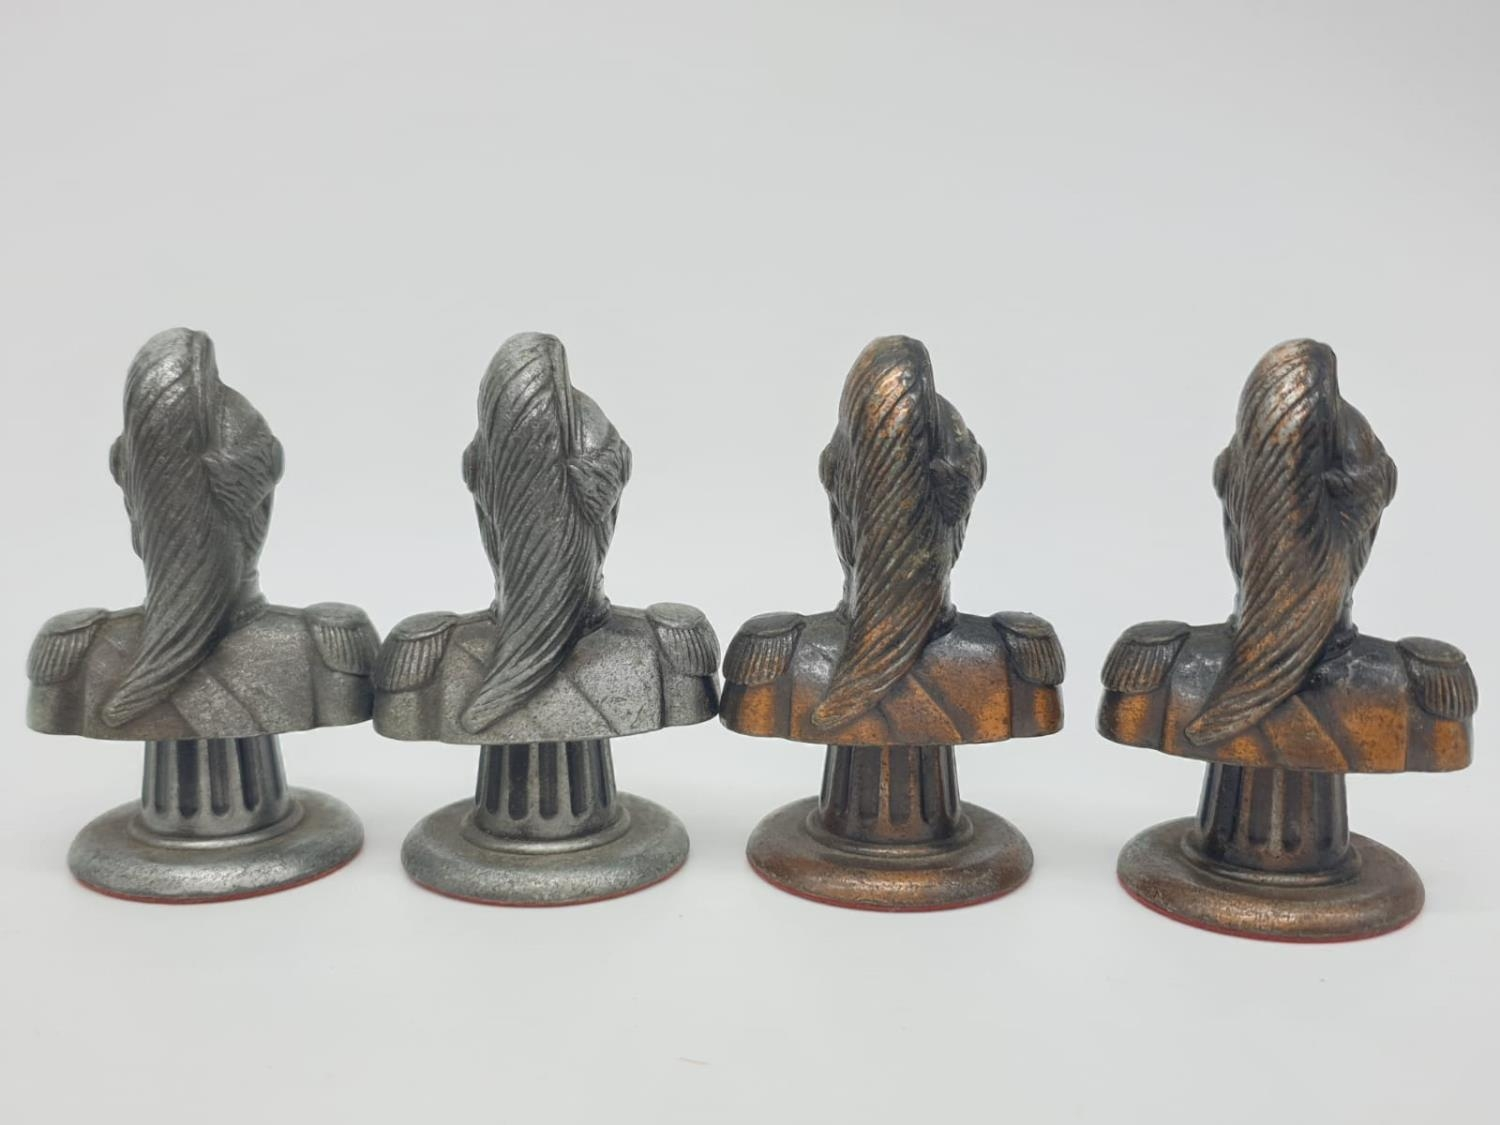 Metal CHESS SET Napoleonic Themed pieces. Napoleon 7.5 cm tall. Play on a square 3.5 cm. - Image 35 of 38